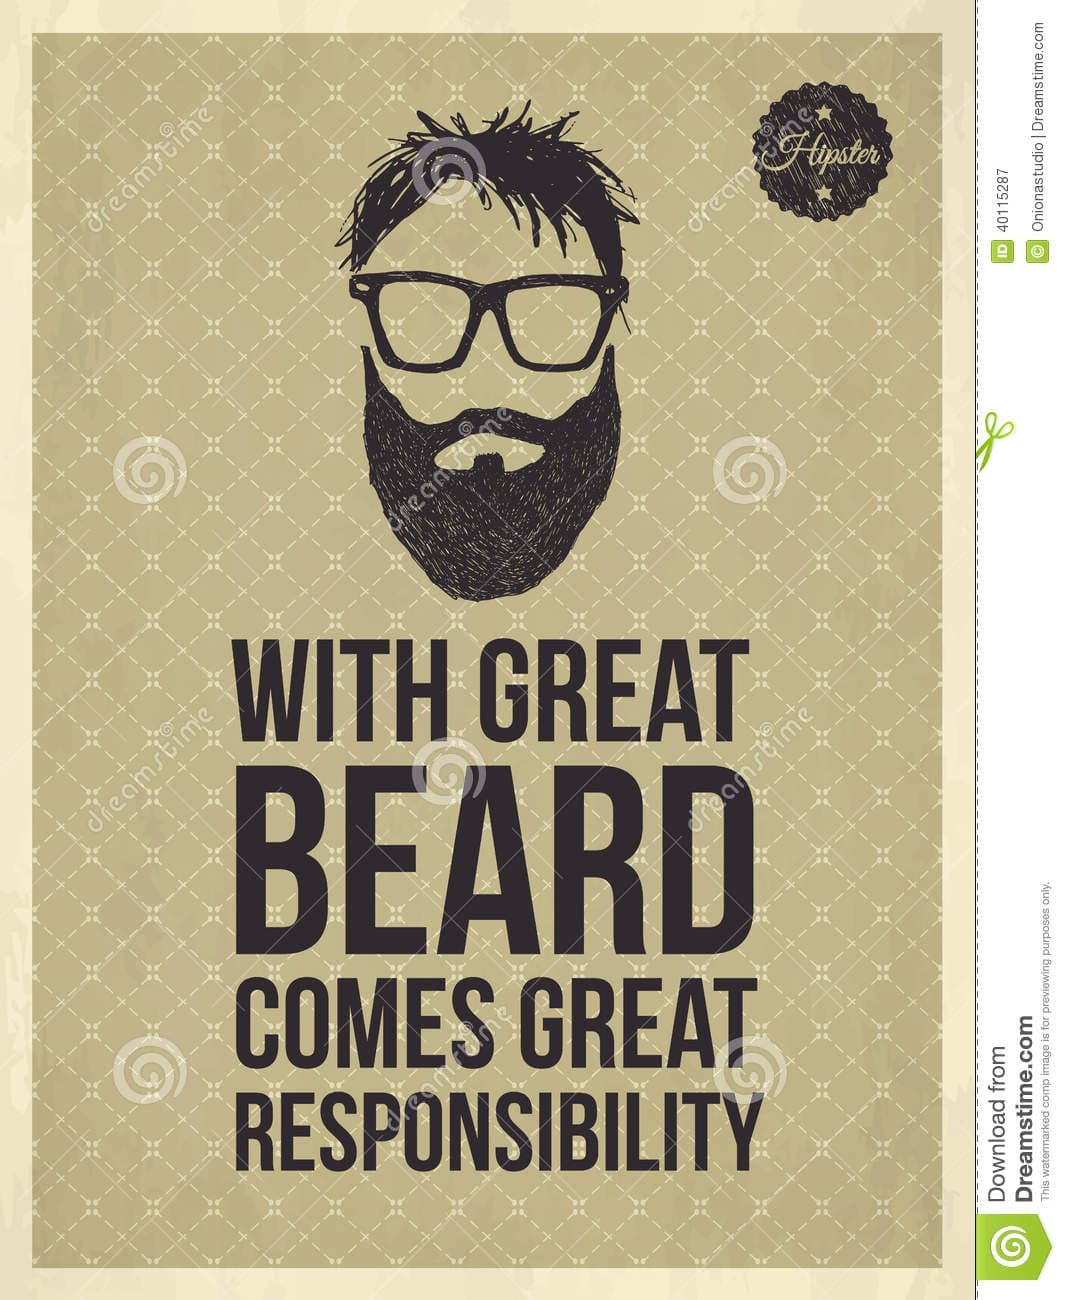 with great beard comes great responsibility 1